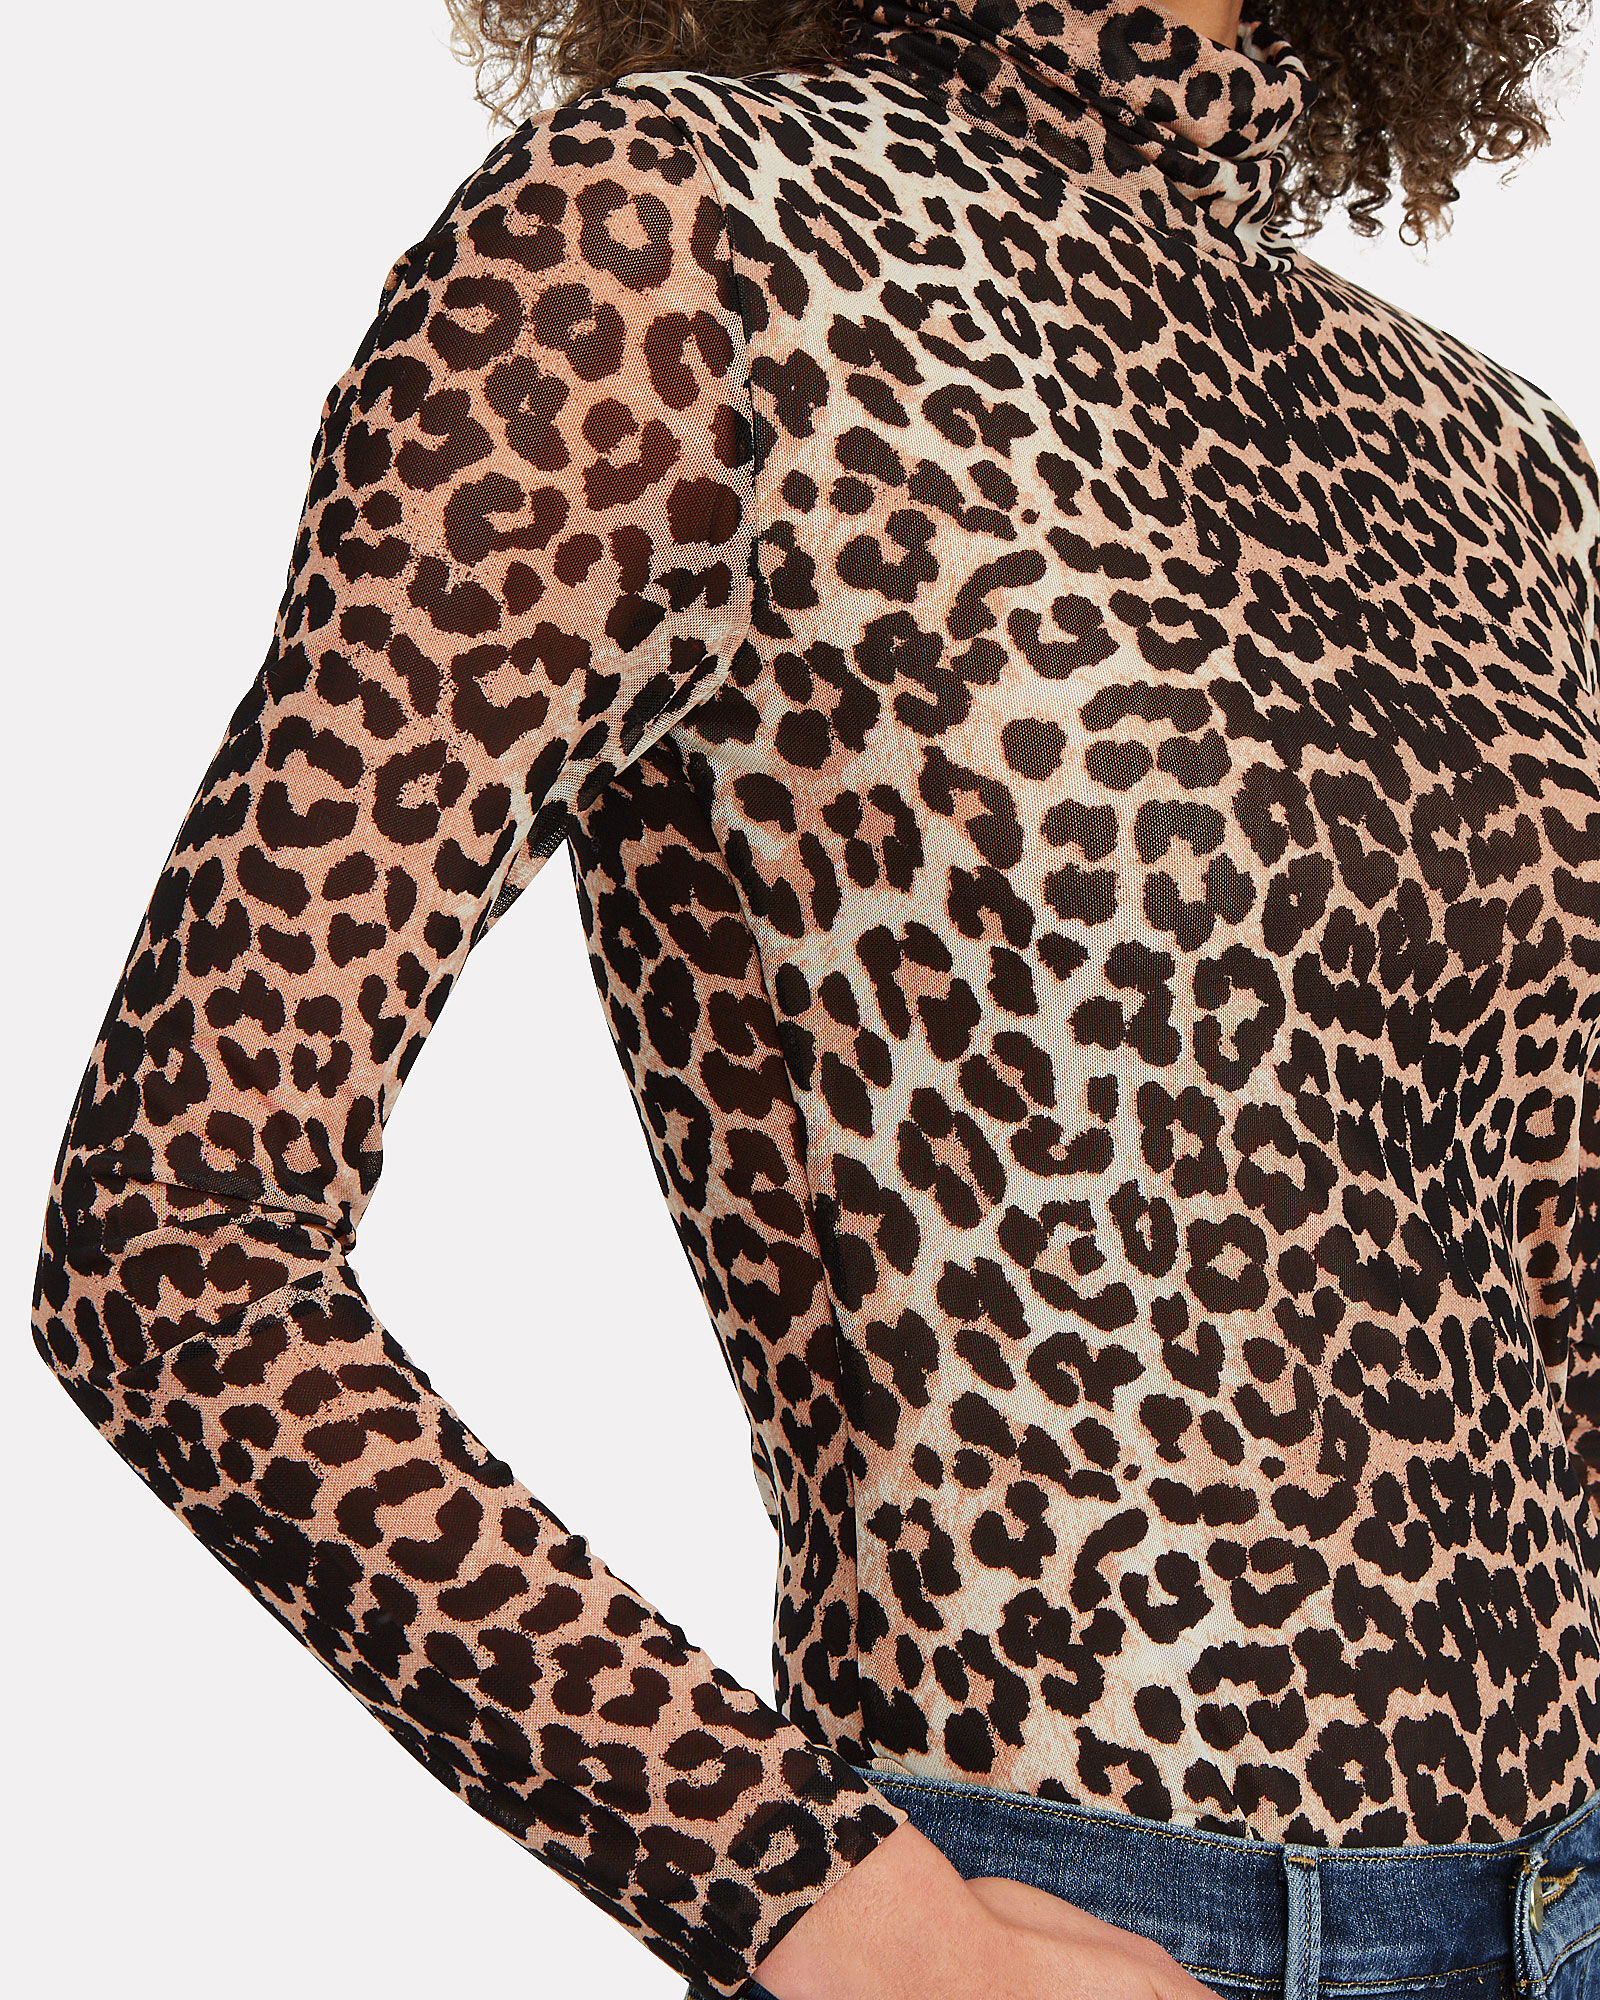 Leopard Printed Mesh Turtleneck Top, BLACK/BEIGE LEOPARD, hi-res